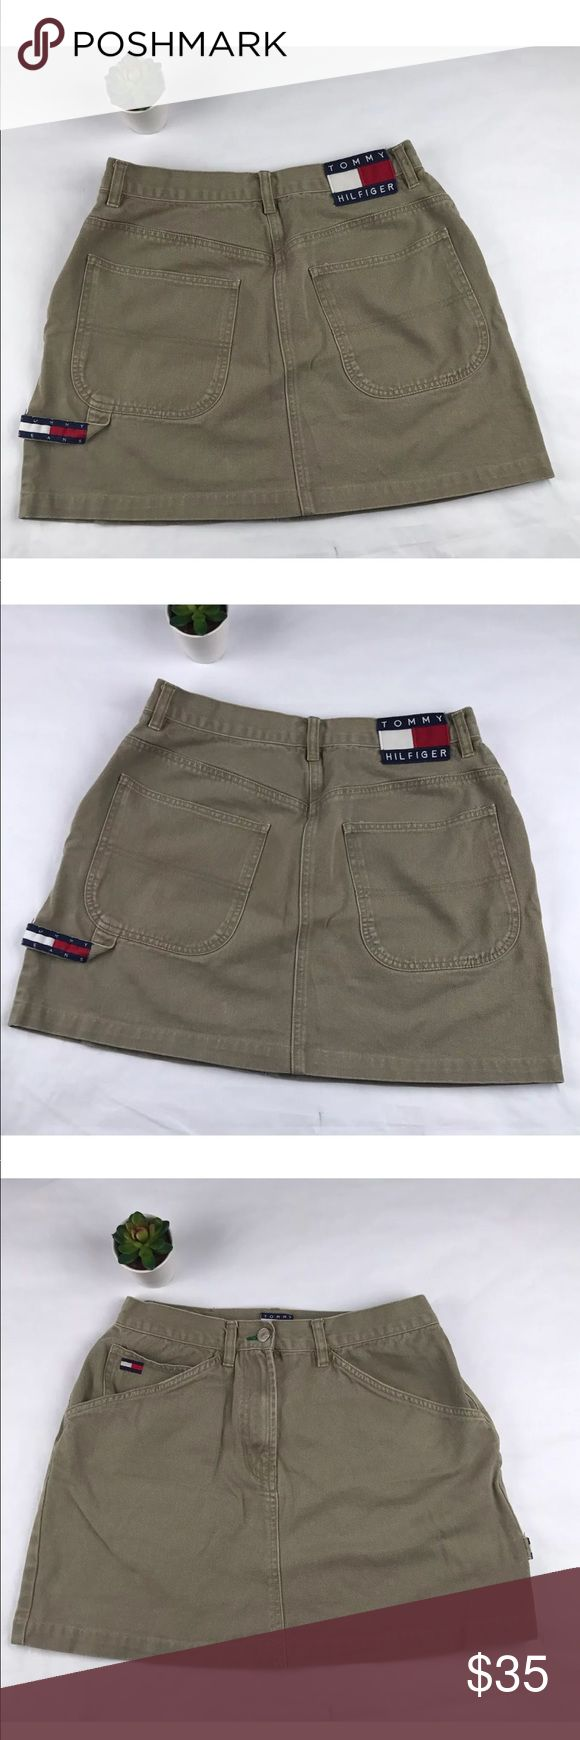 Vintage Tommy Hilfiger women's pocket mini skirt women's vintage tommy Hilfiger pockets short skirt olive green, SZ/12 pockets on front and back gently worn small  flaw on inside tag not visible  Please see pictures for further details.  waist around 29''  length 16''  Thank you for looking!! Tommy Hilfiger Skirts Mini